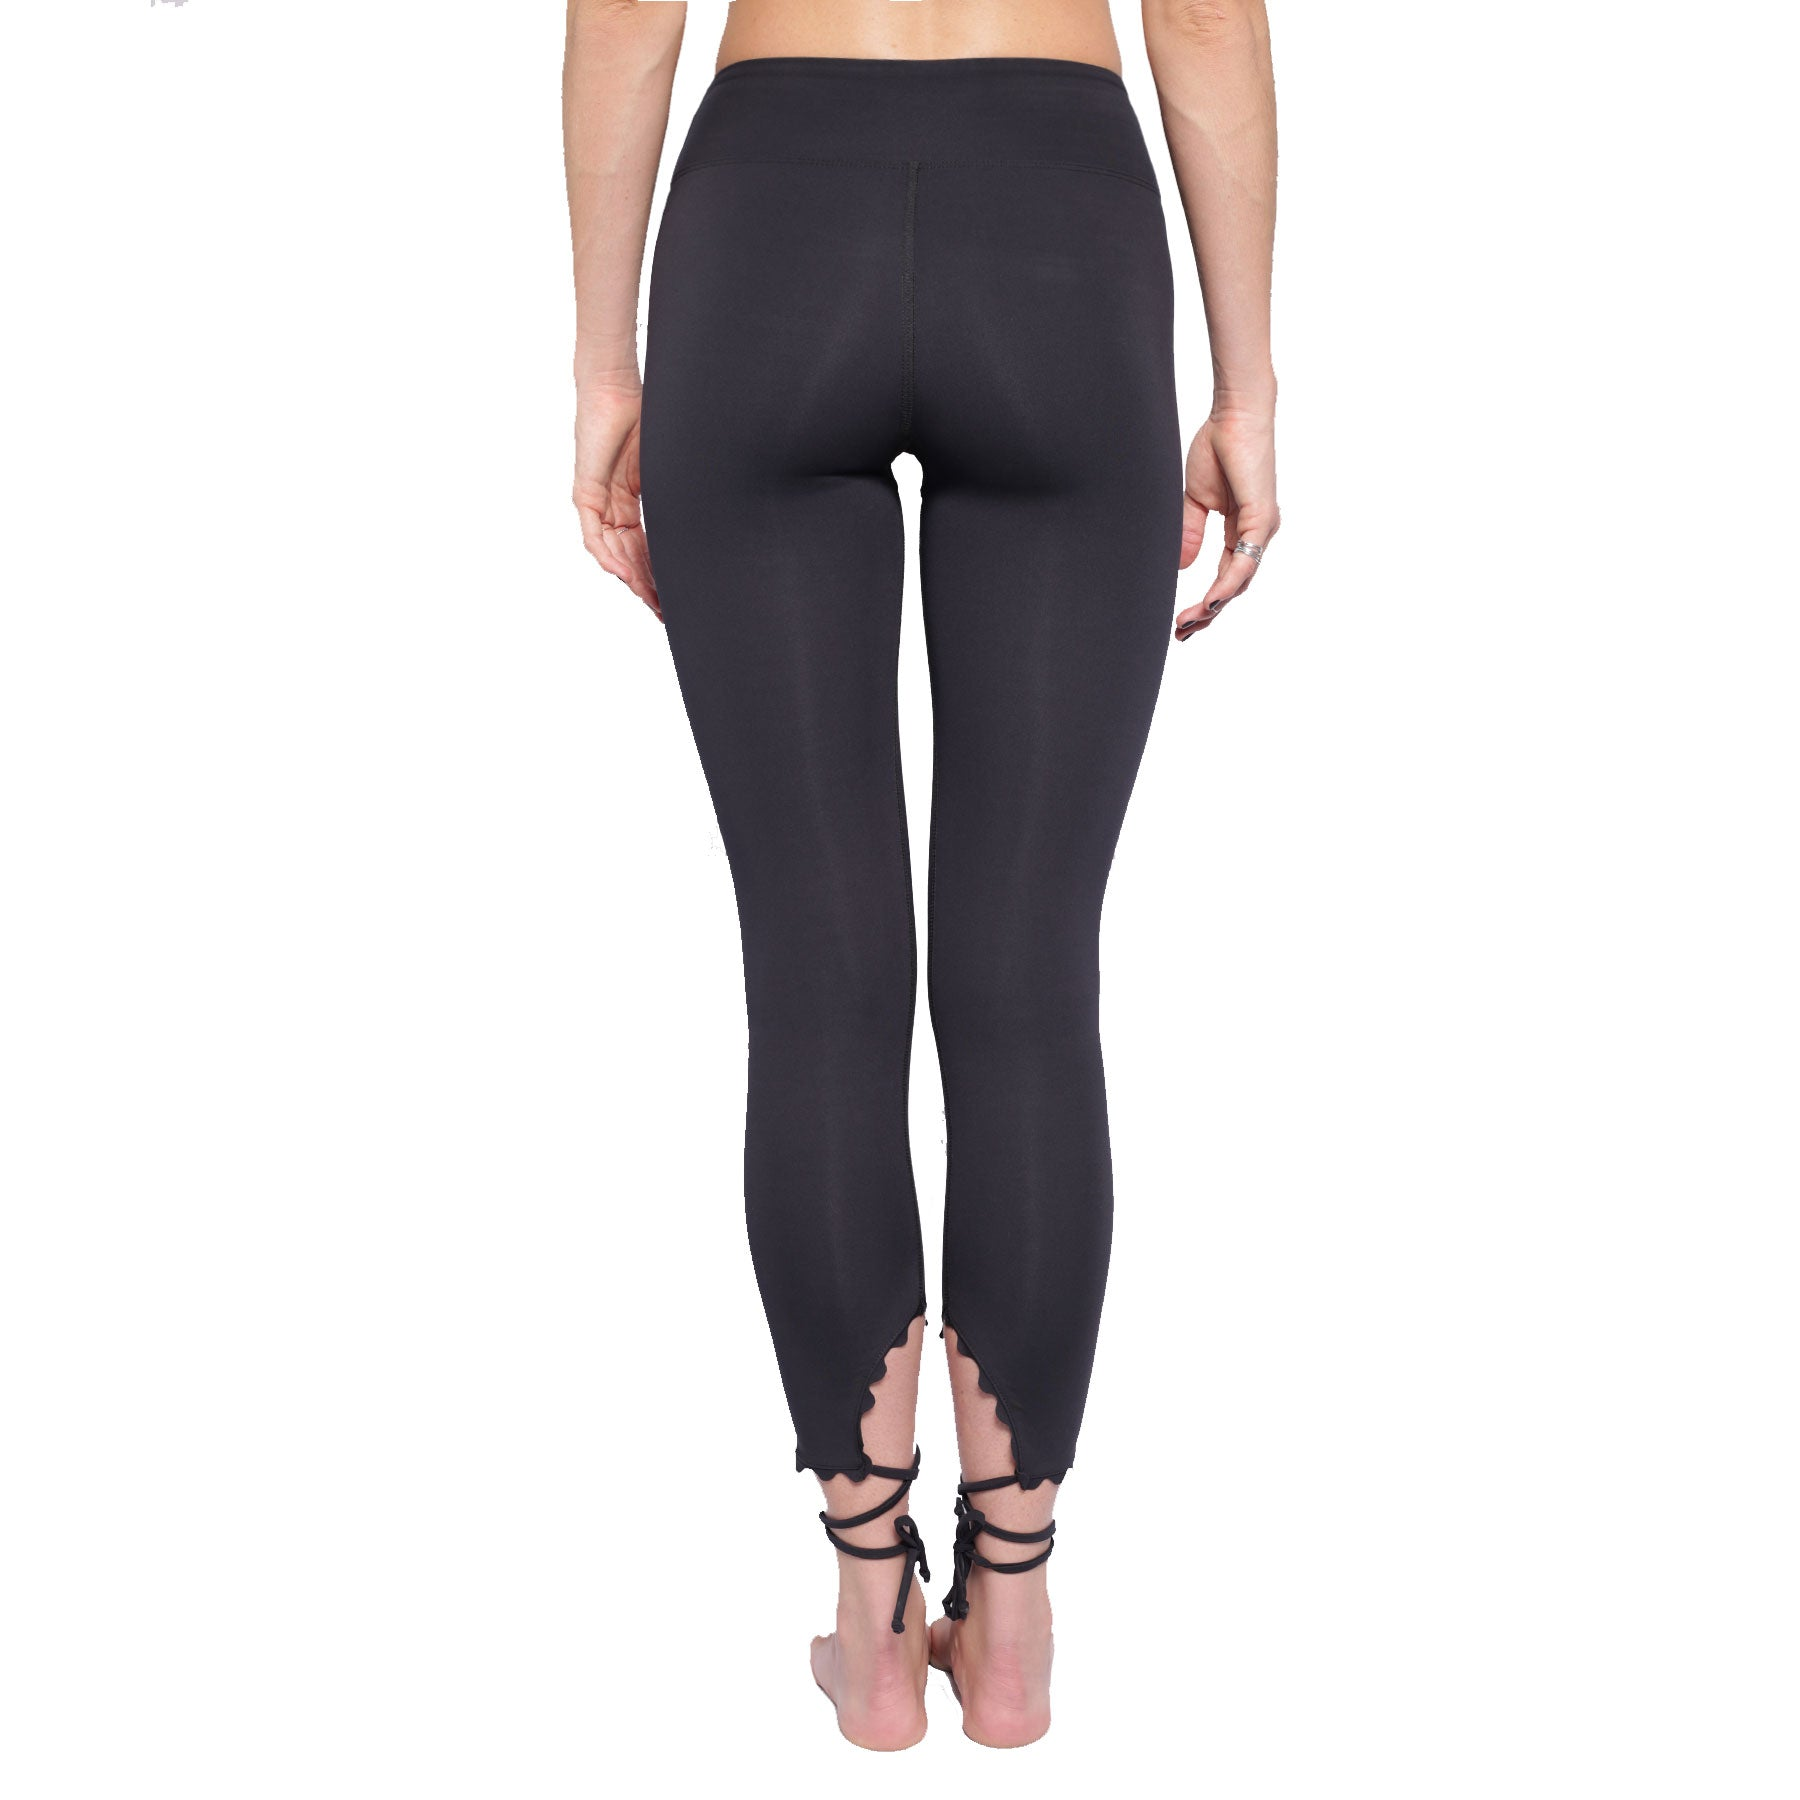 WRAP HEM LEGGING IN BLACK